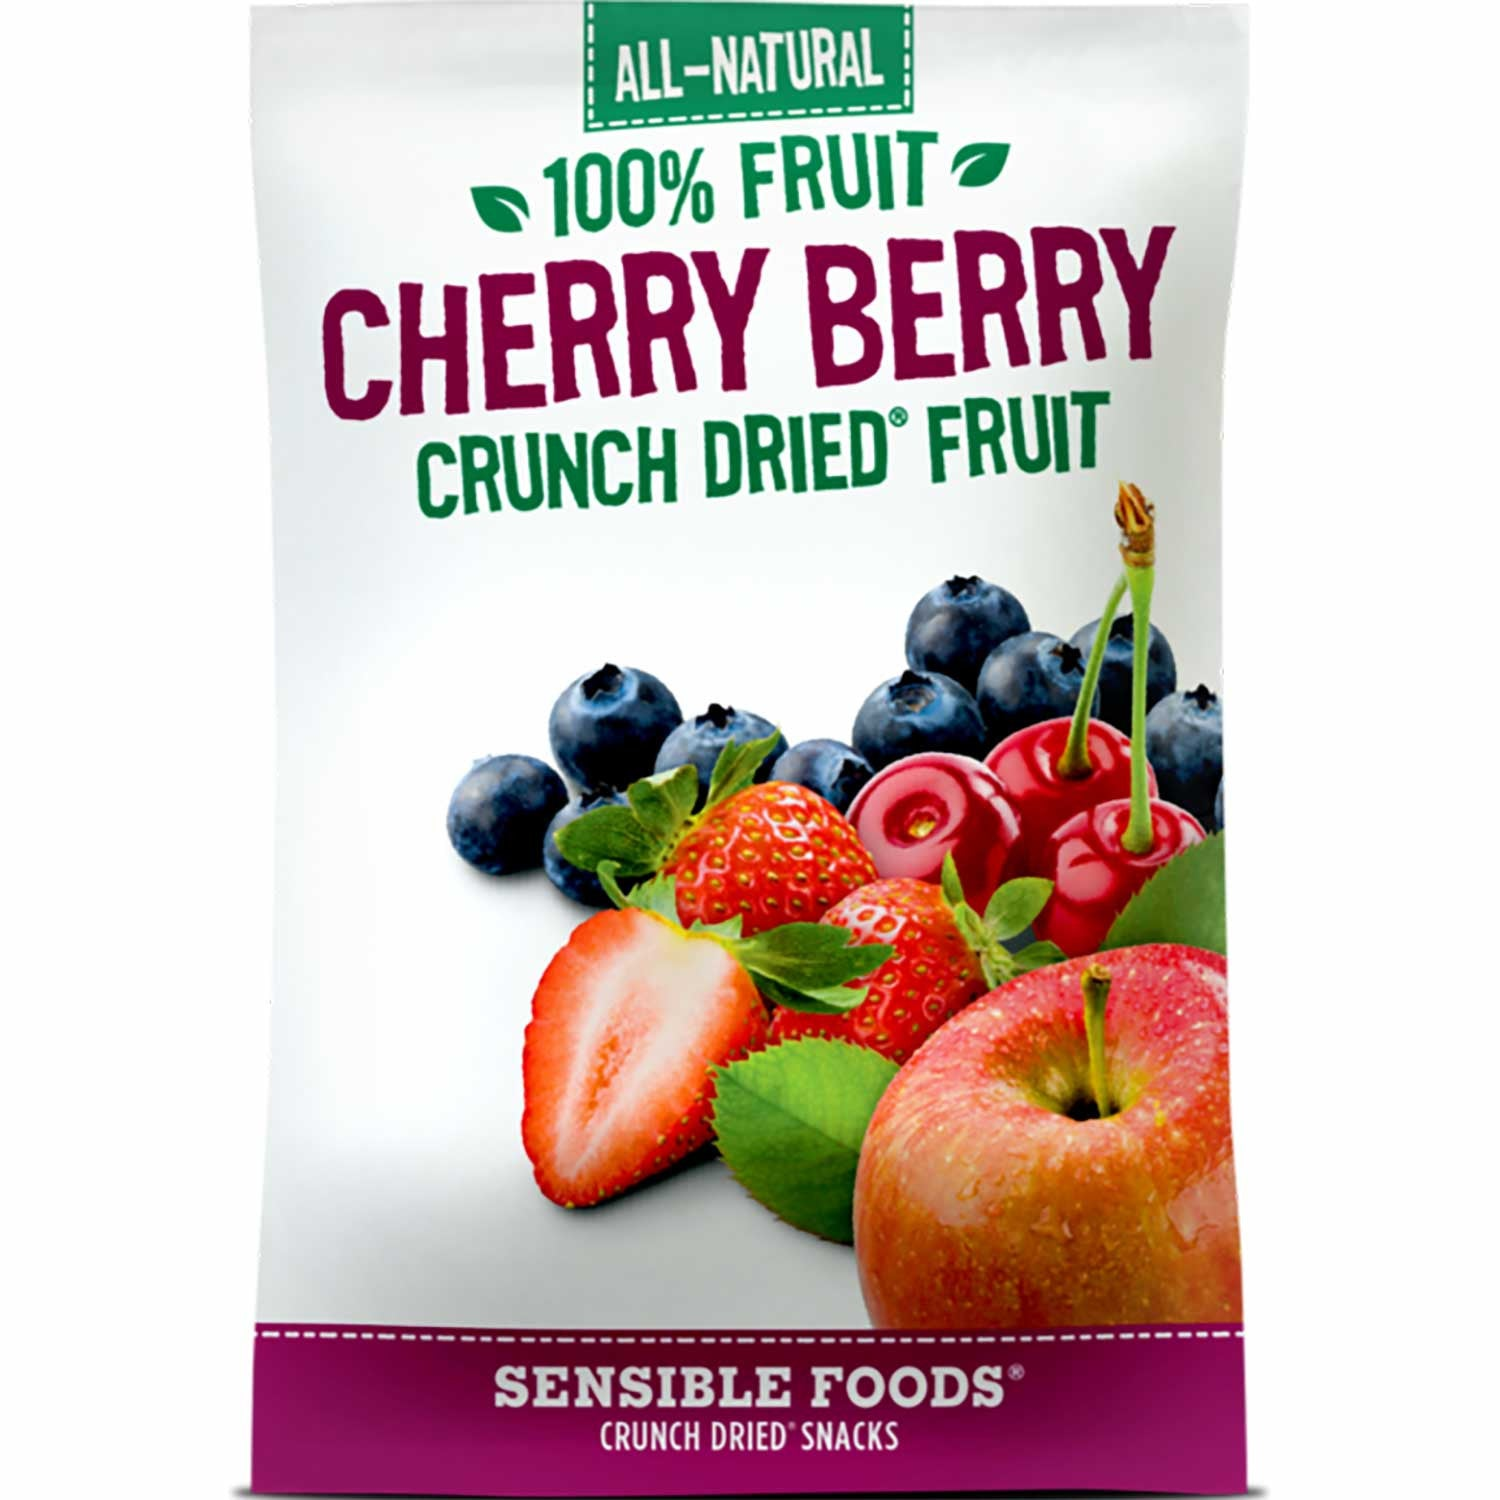 Sensible Foods All-Natural 100% Fruit Cherry Berry Crunch Dried Fruit, 10g.-NaturesWisdom